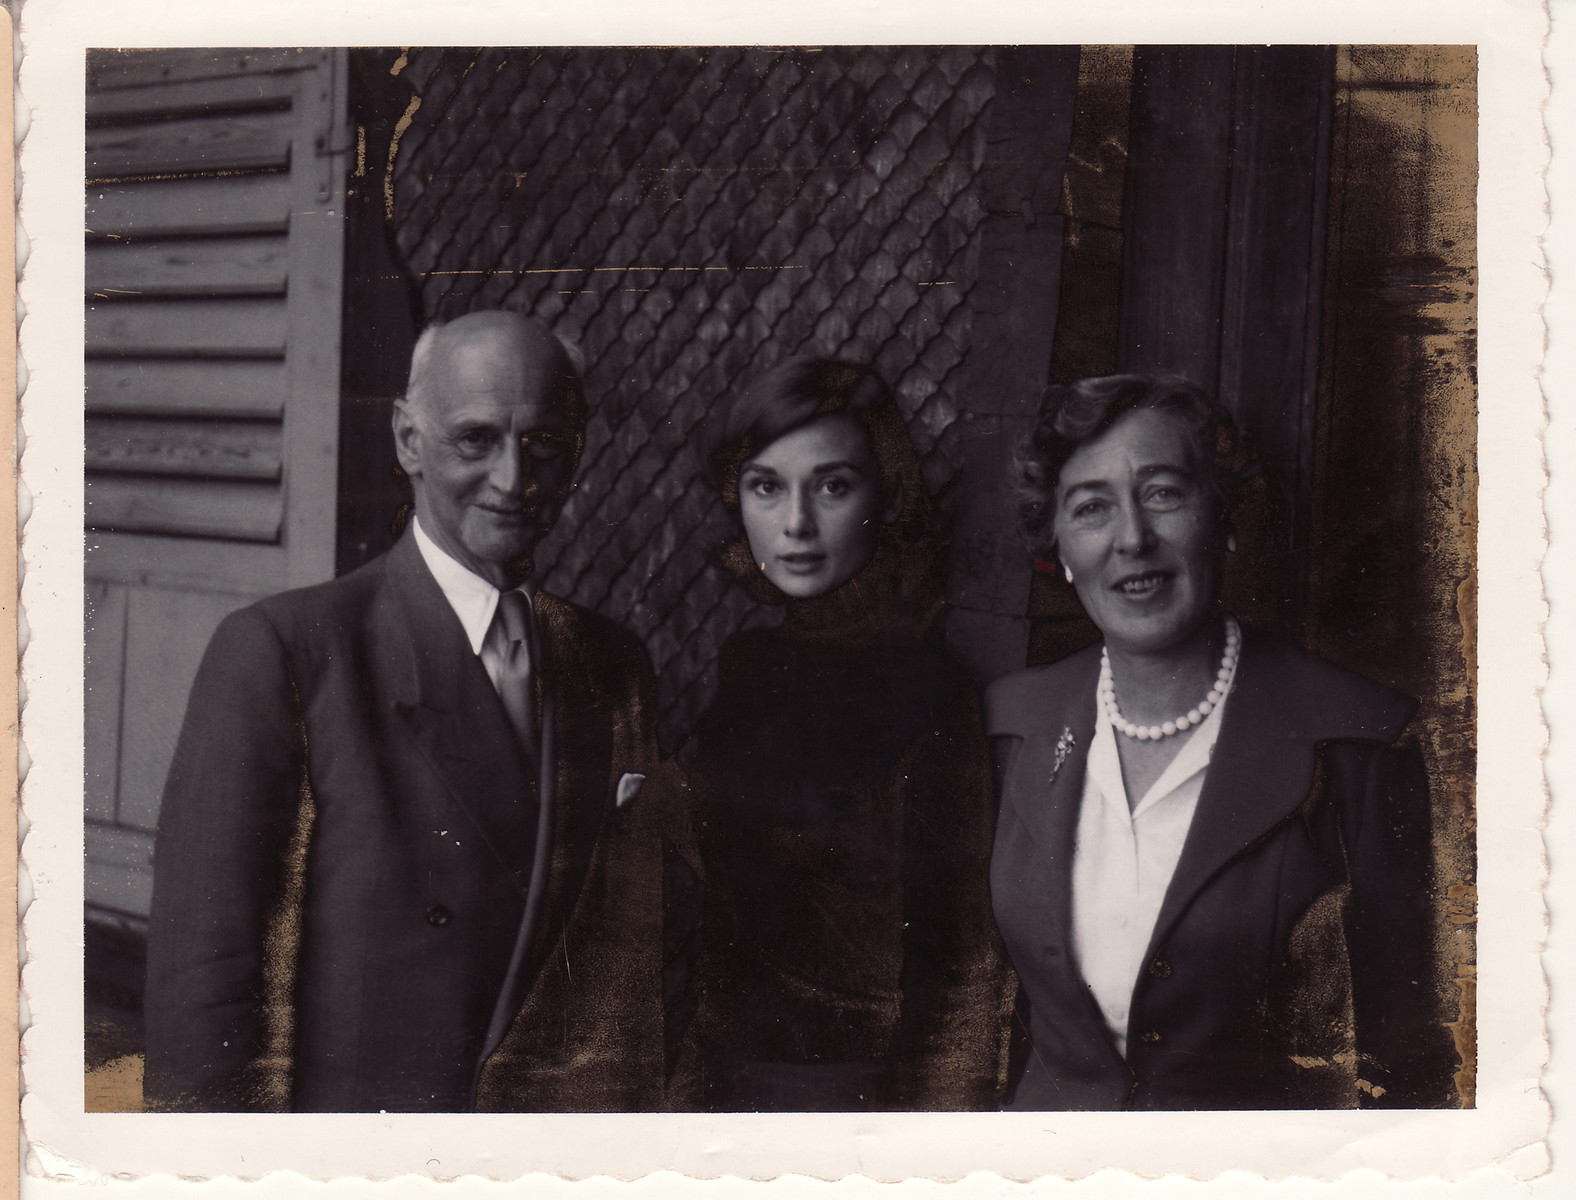 Otto and Fritzi Frank pose near her home in Lucerne, Switzerland with the actress Audrey Hepburn where they were trying to convince her to play the role of Anne Frank in the movie directed by George Stevens.